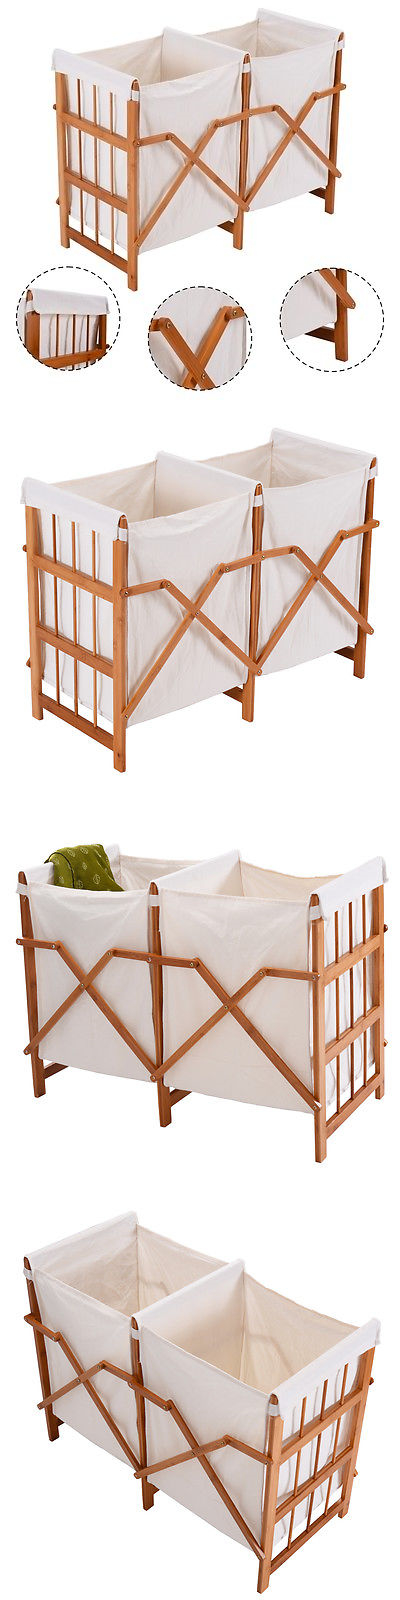 Hampers 43517: Household Folding Bamboo Frame Laundry Hamper Clothes ...